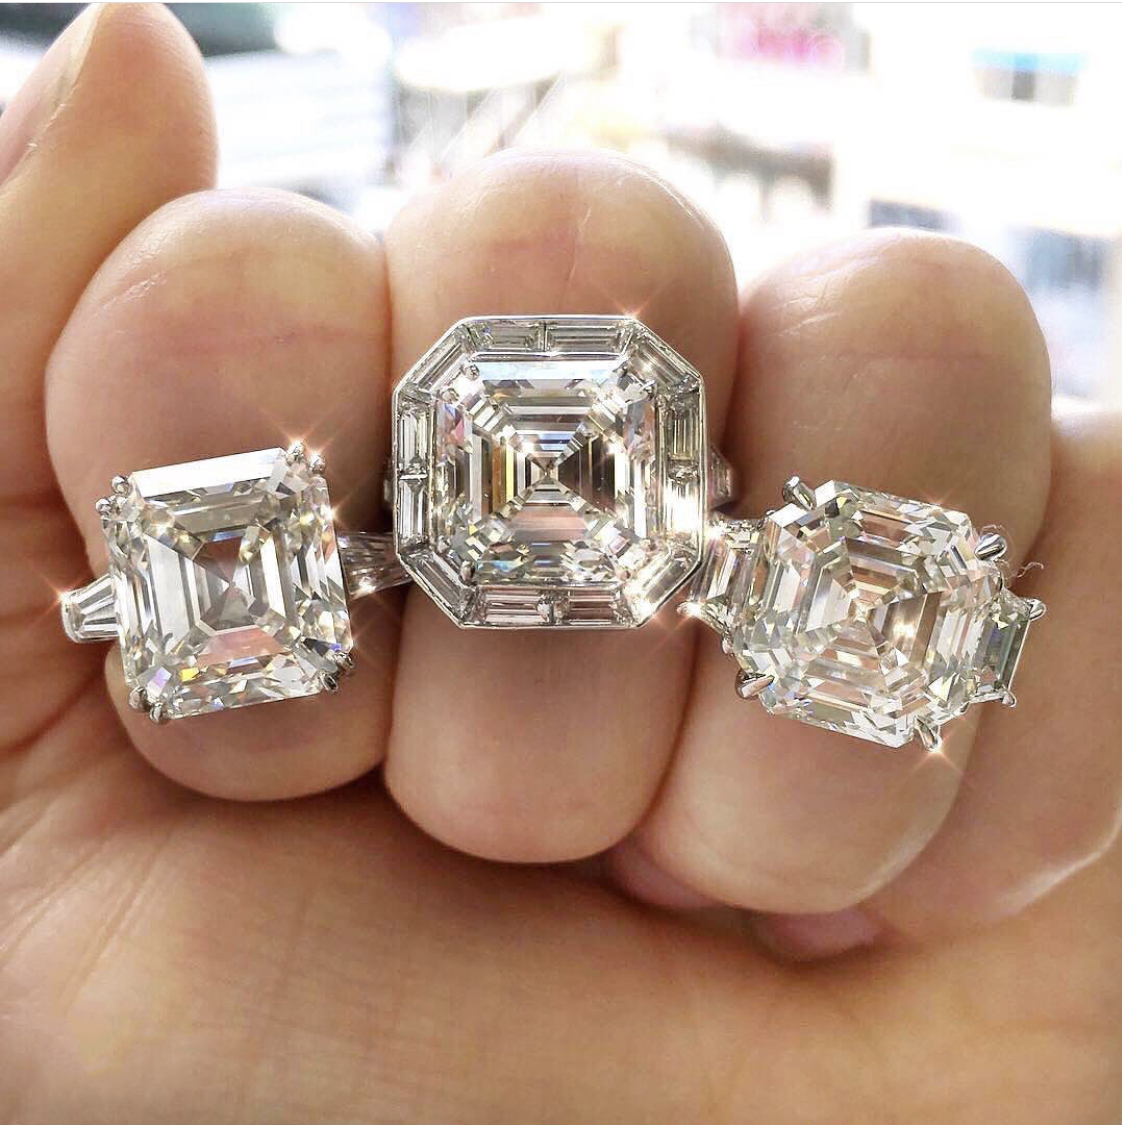 New 925 Sterling Silver 4ct Square Asscher cut Diamond rings for Women Wedding Engagement Cocktail Gemstone Rings finger Jewelry